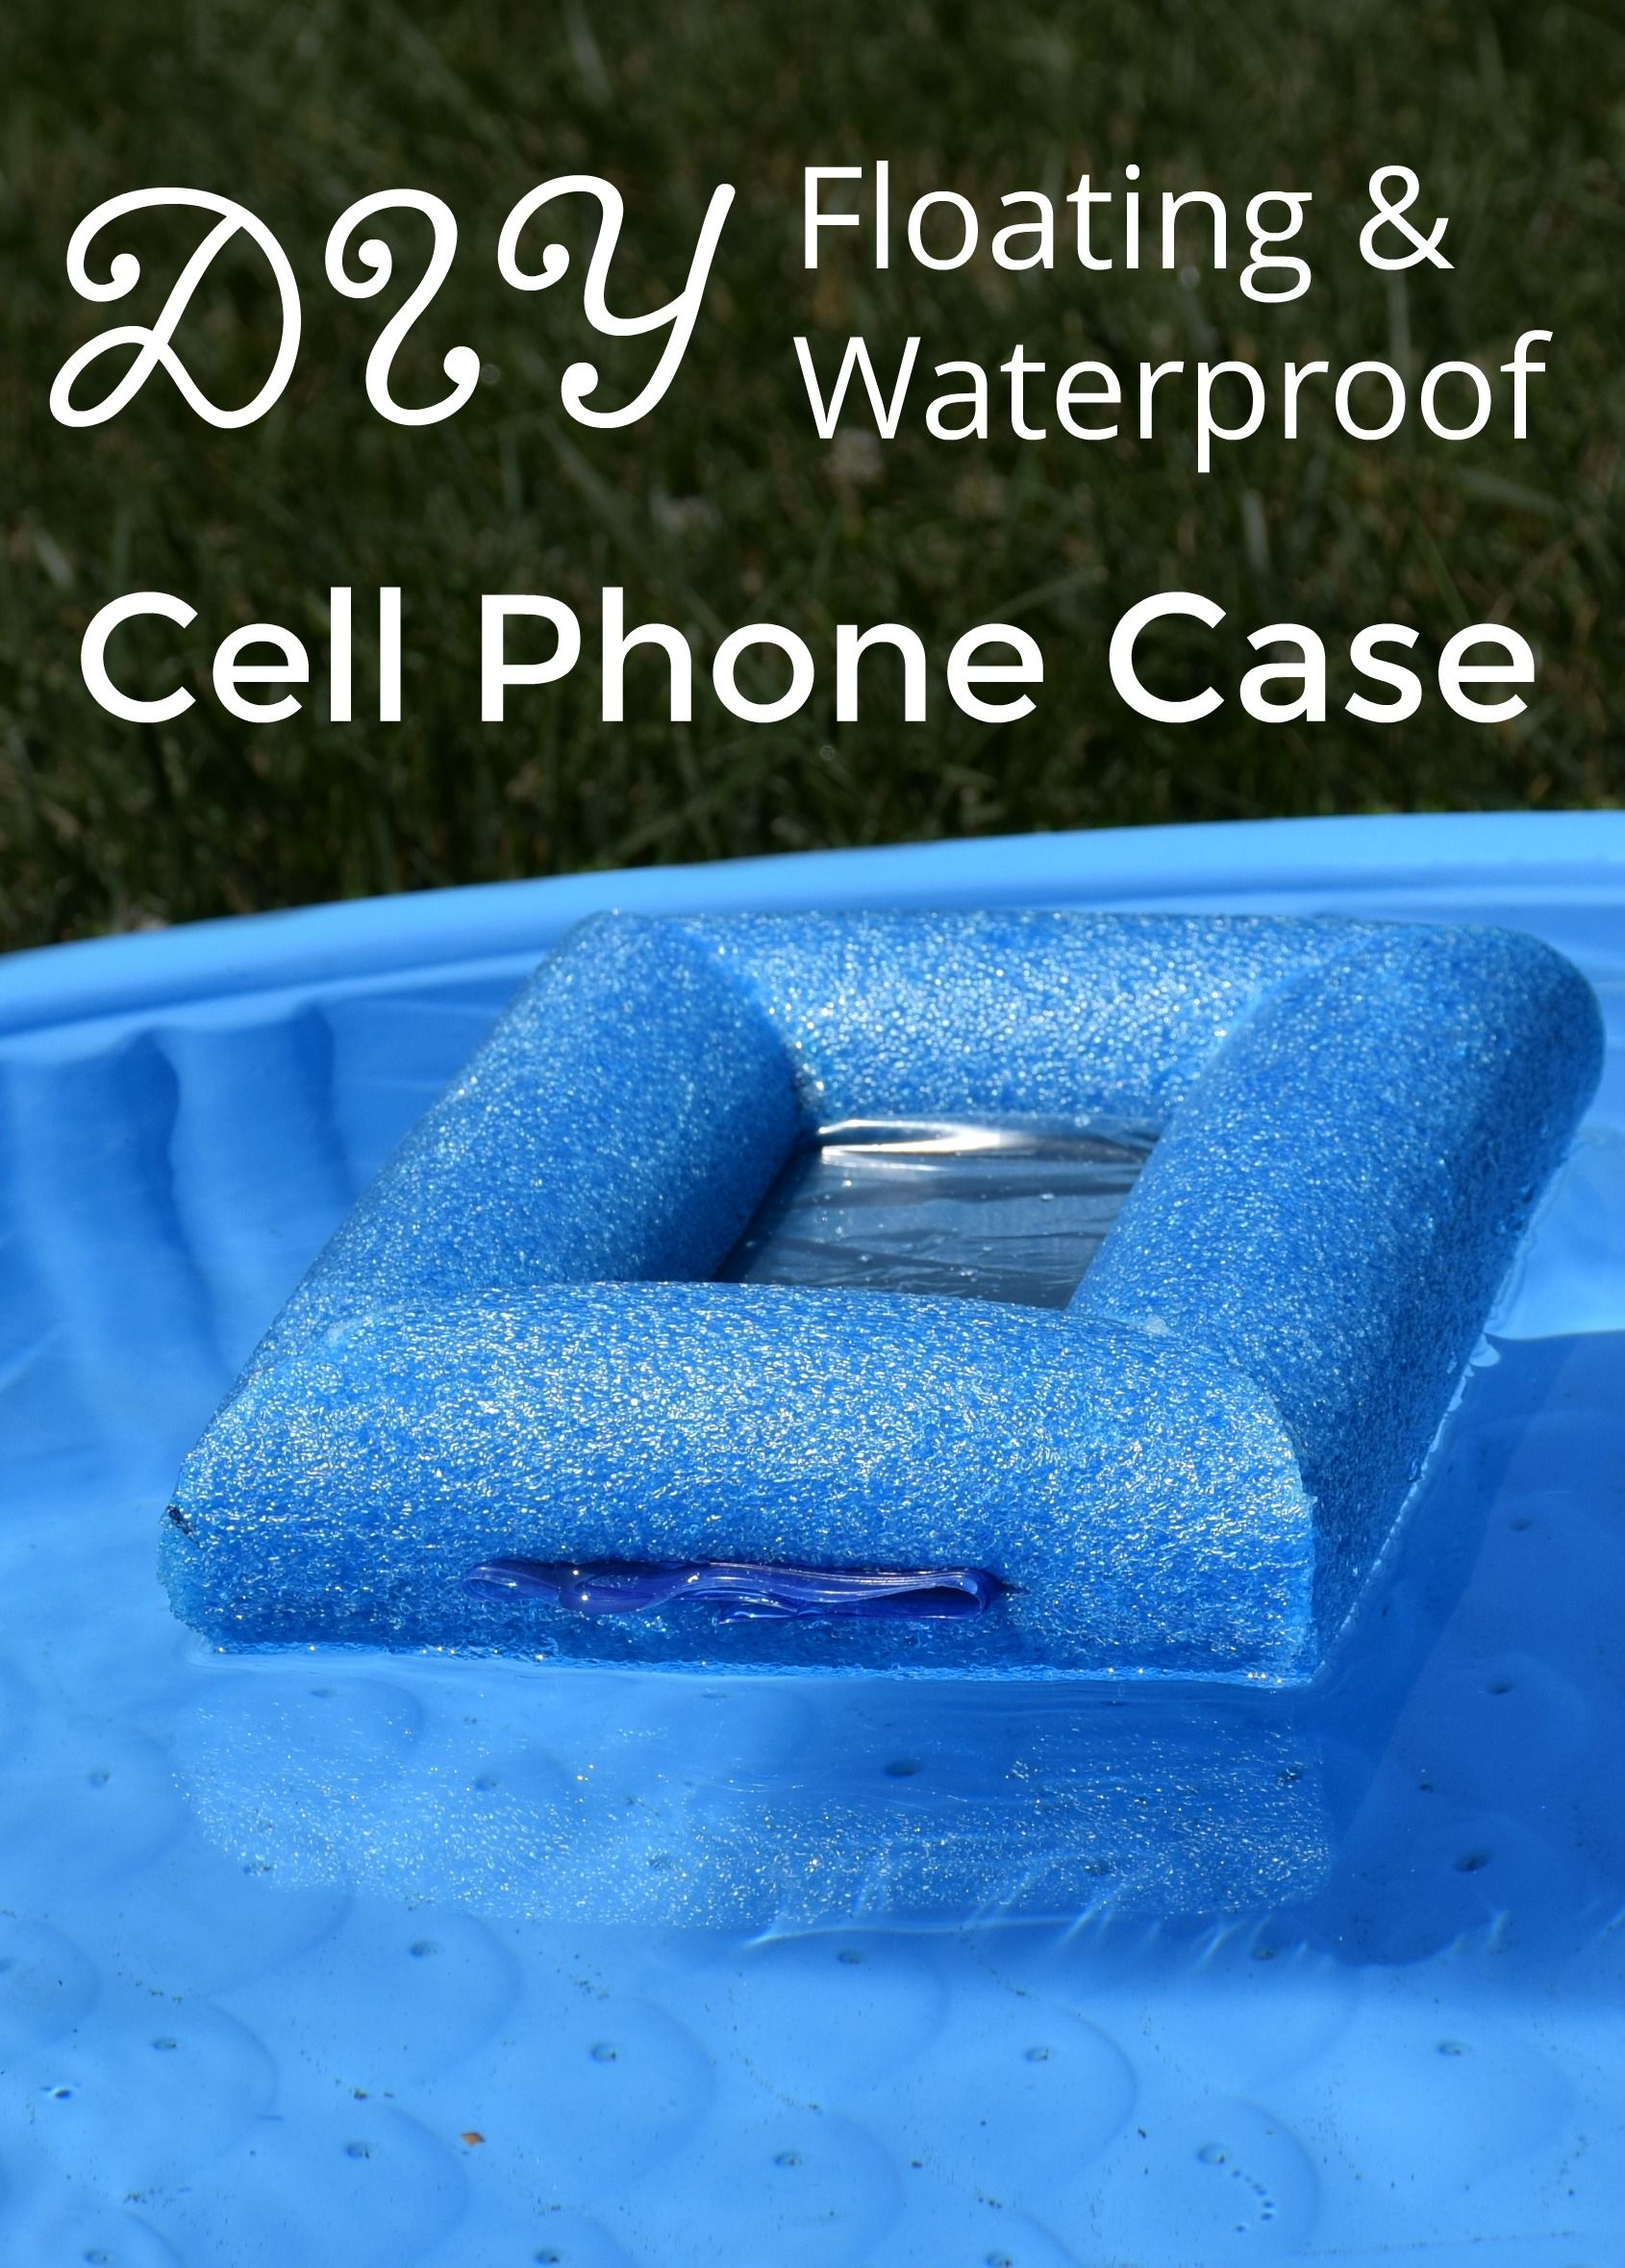 Ad Use A Pool Noodle And Freezer Bag To Make Waterproof Phone Case Summerisforsavings Collectivebias Wfm1